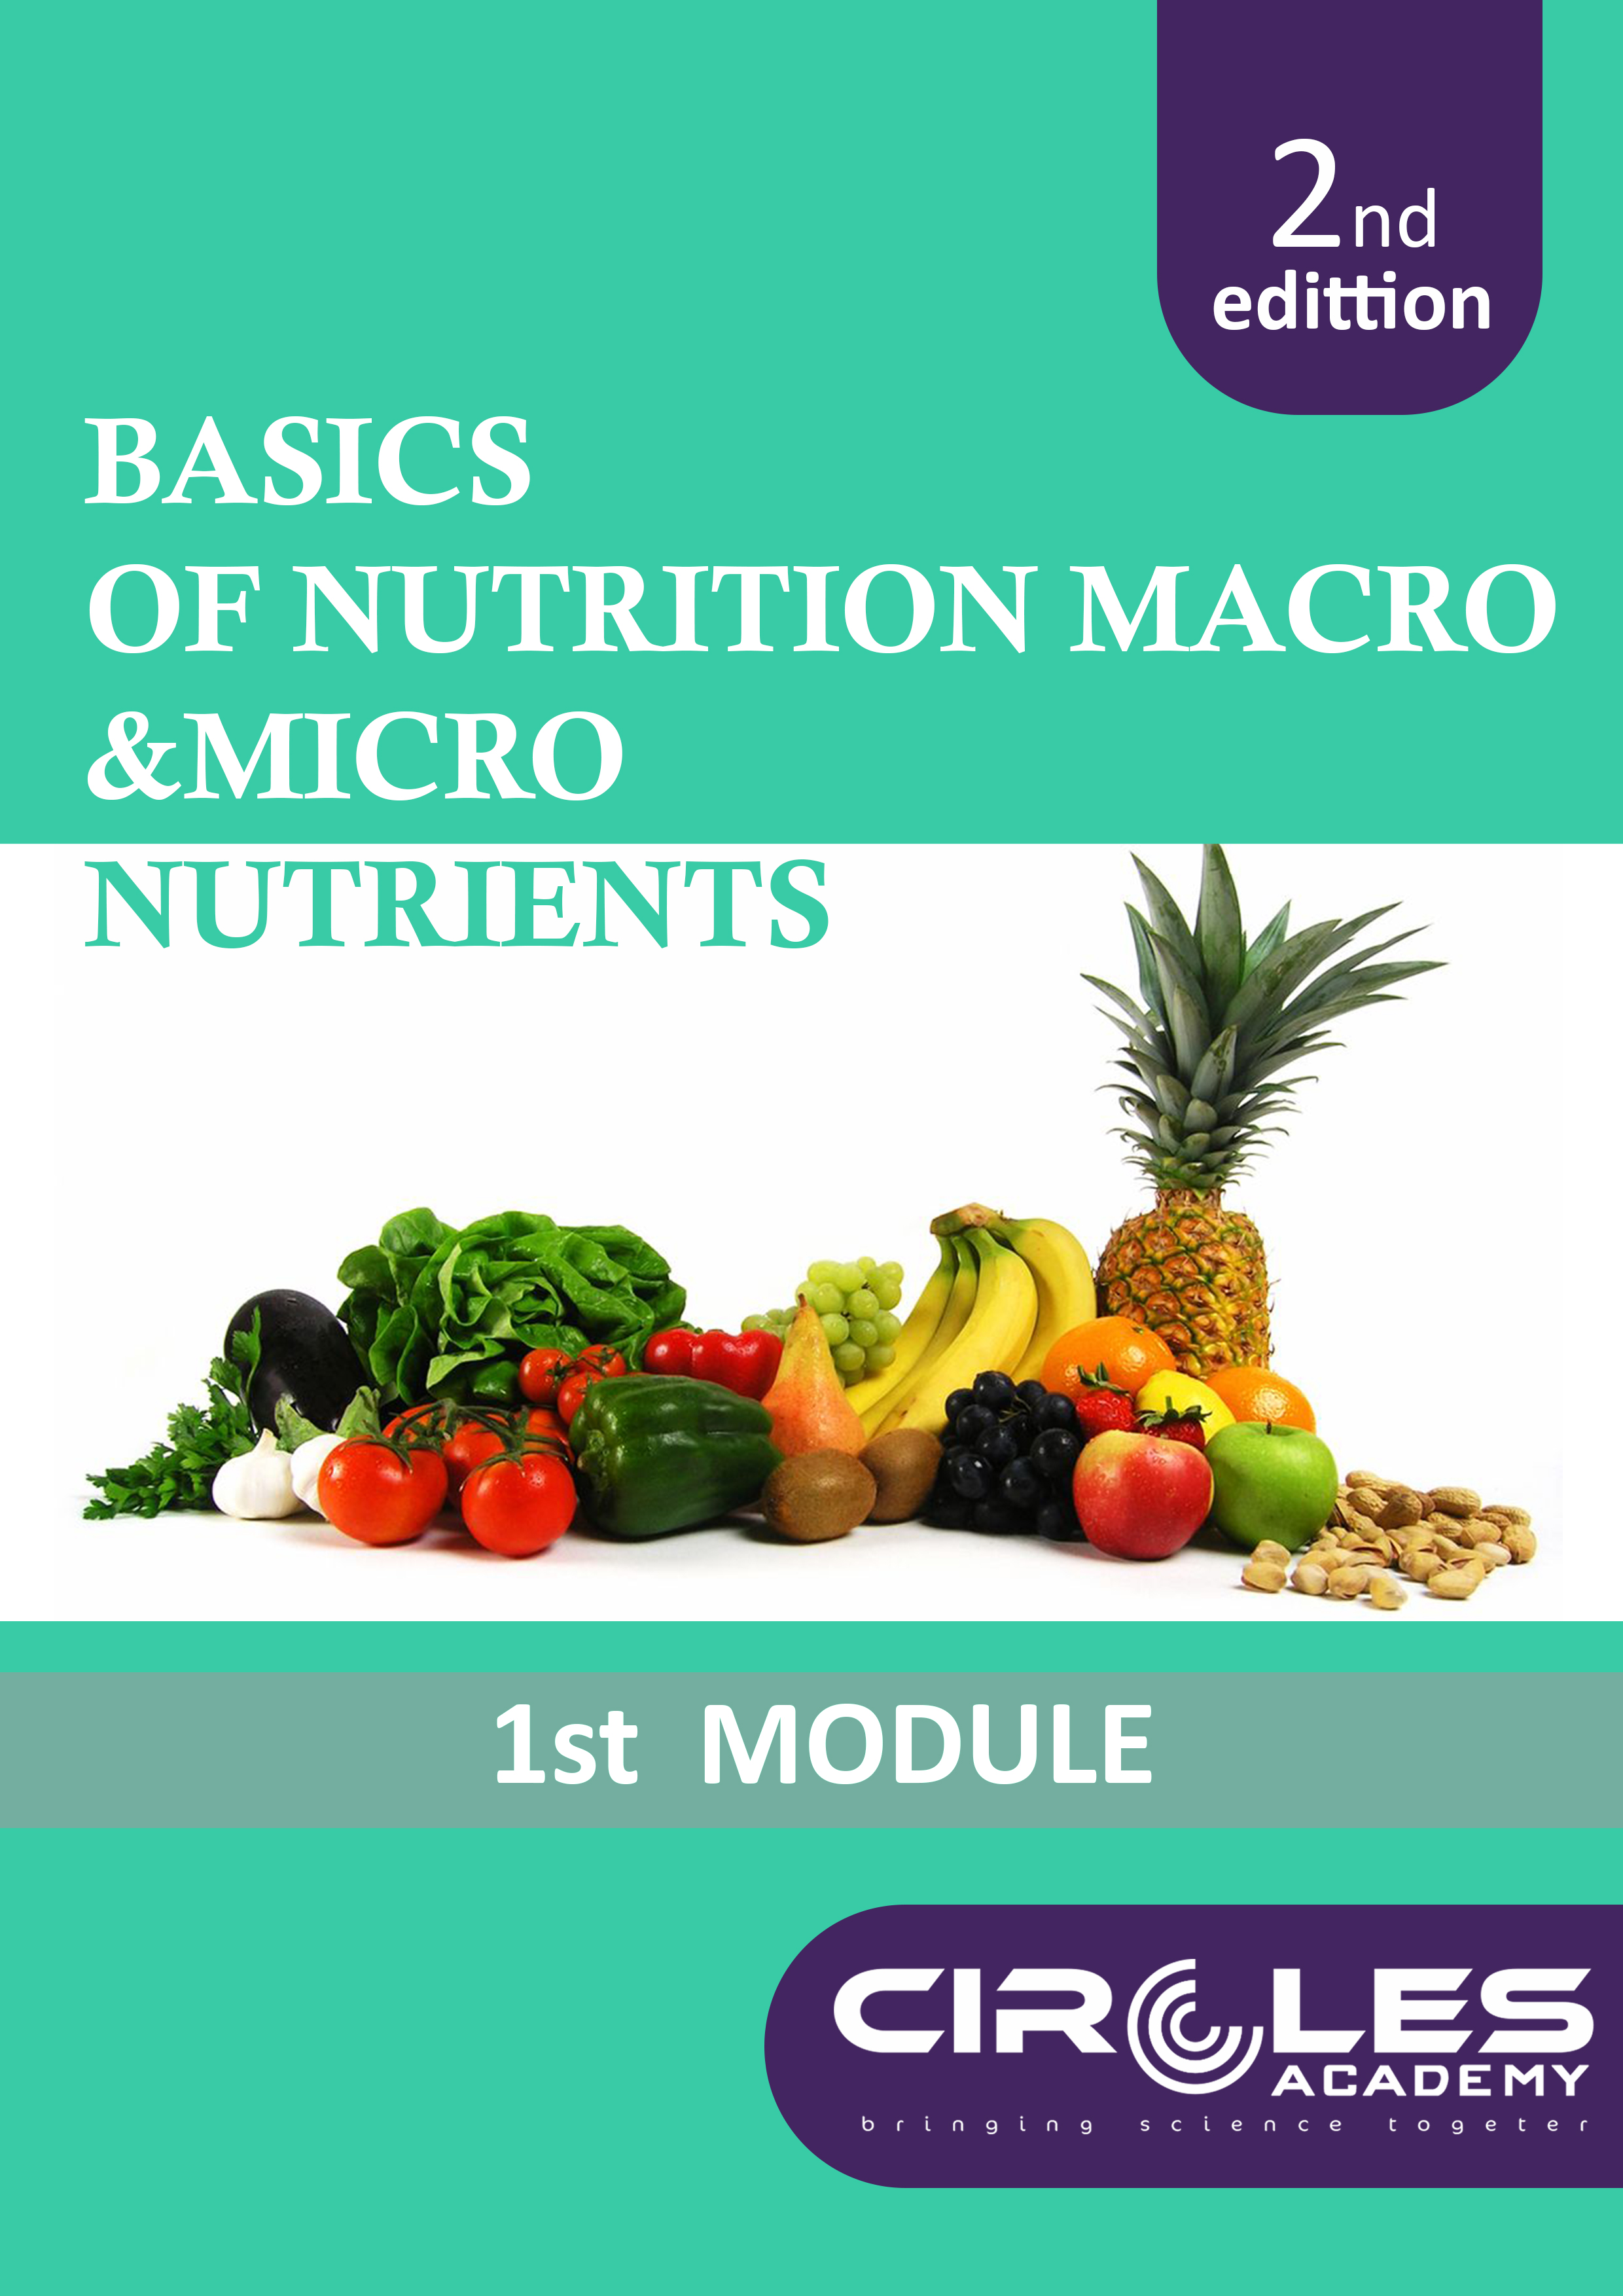 1st  MODULE -  Basic Nutrition